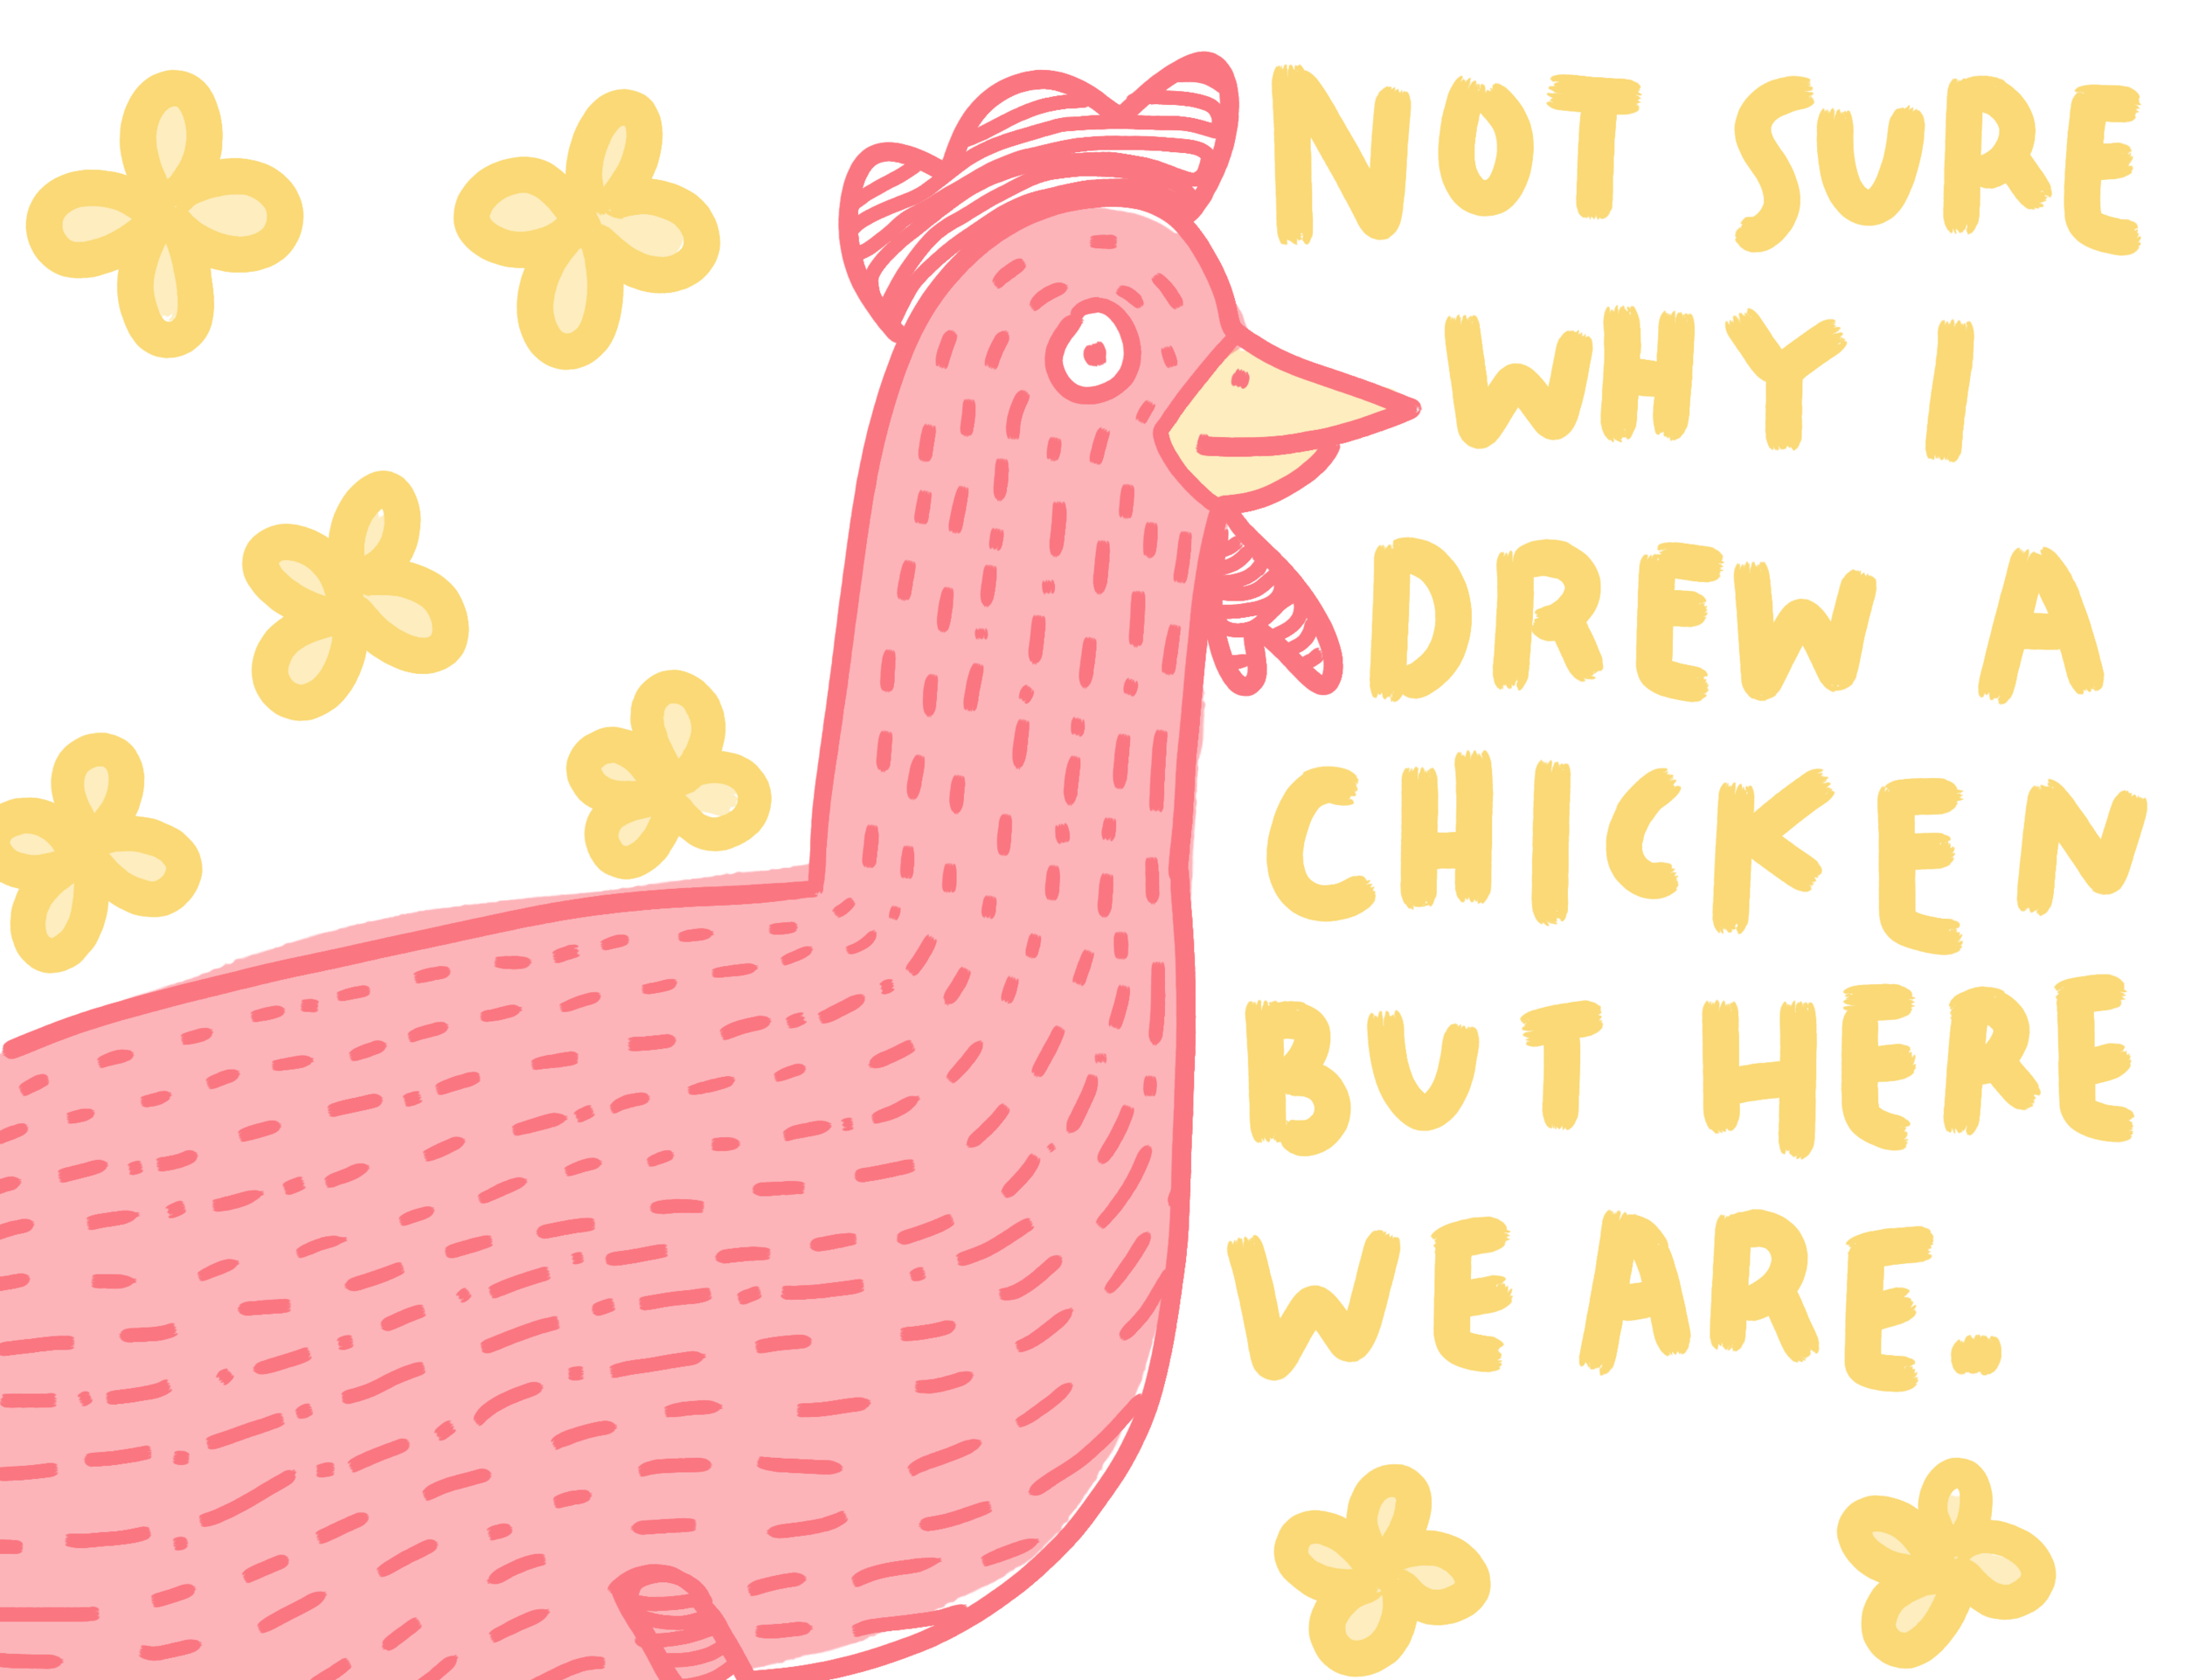 75- a chicken.png